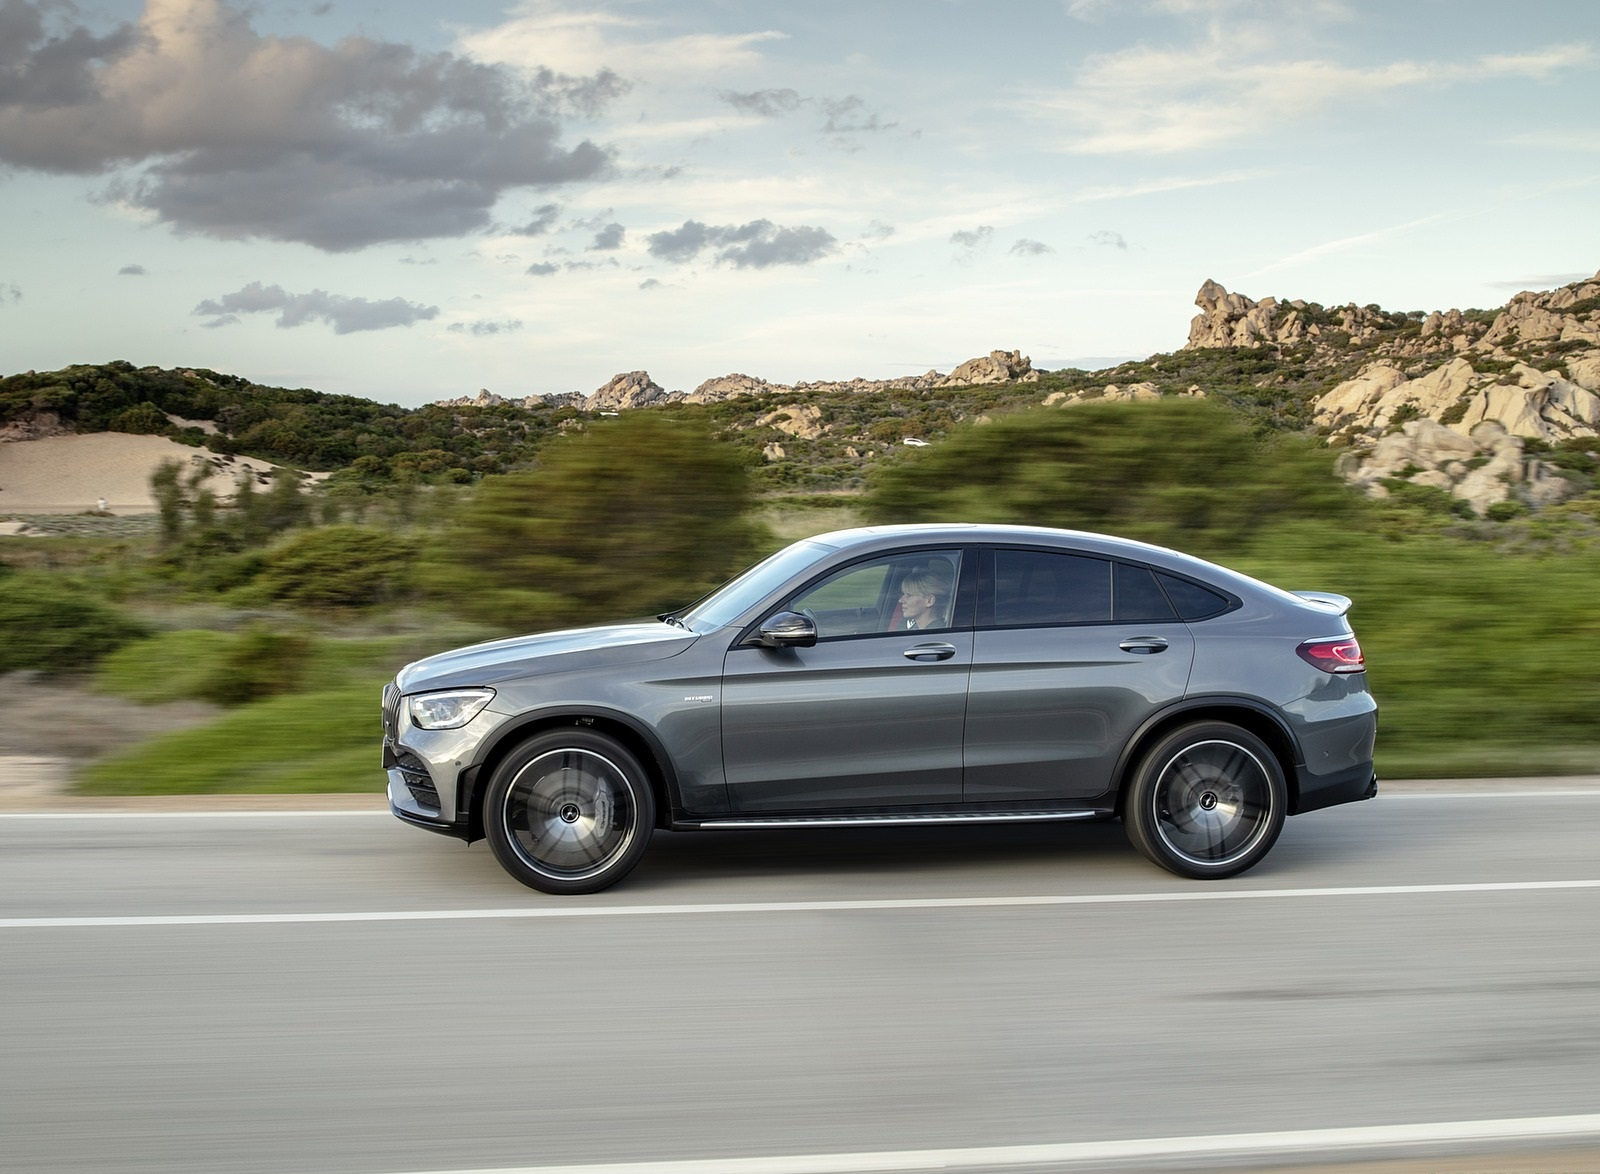 2020 Mercedes-AMG GLC 43 4MATIC Coupe Side Wallpapers (9)